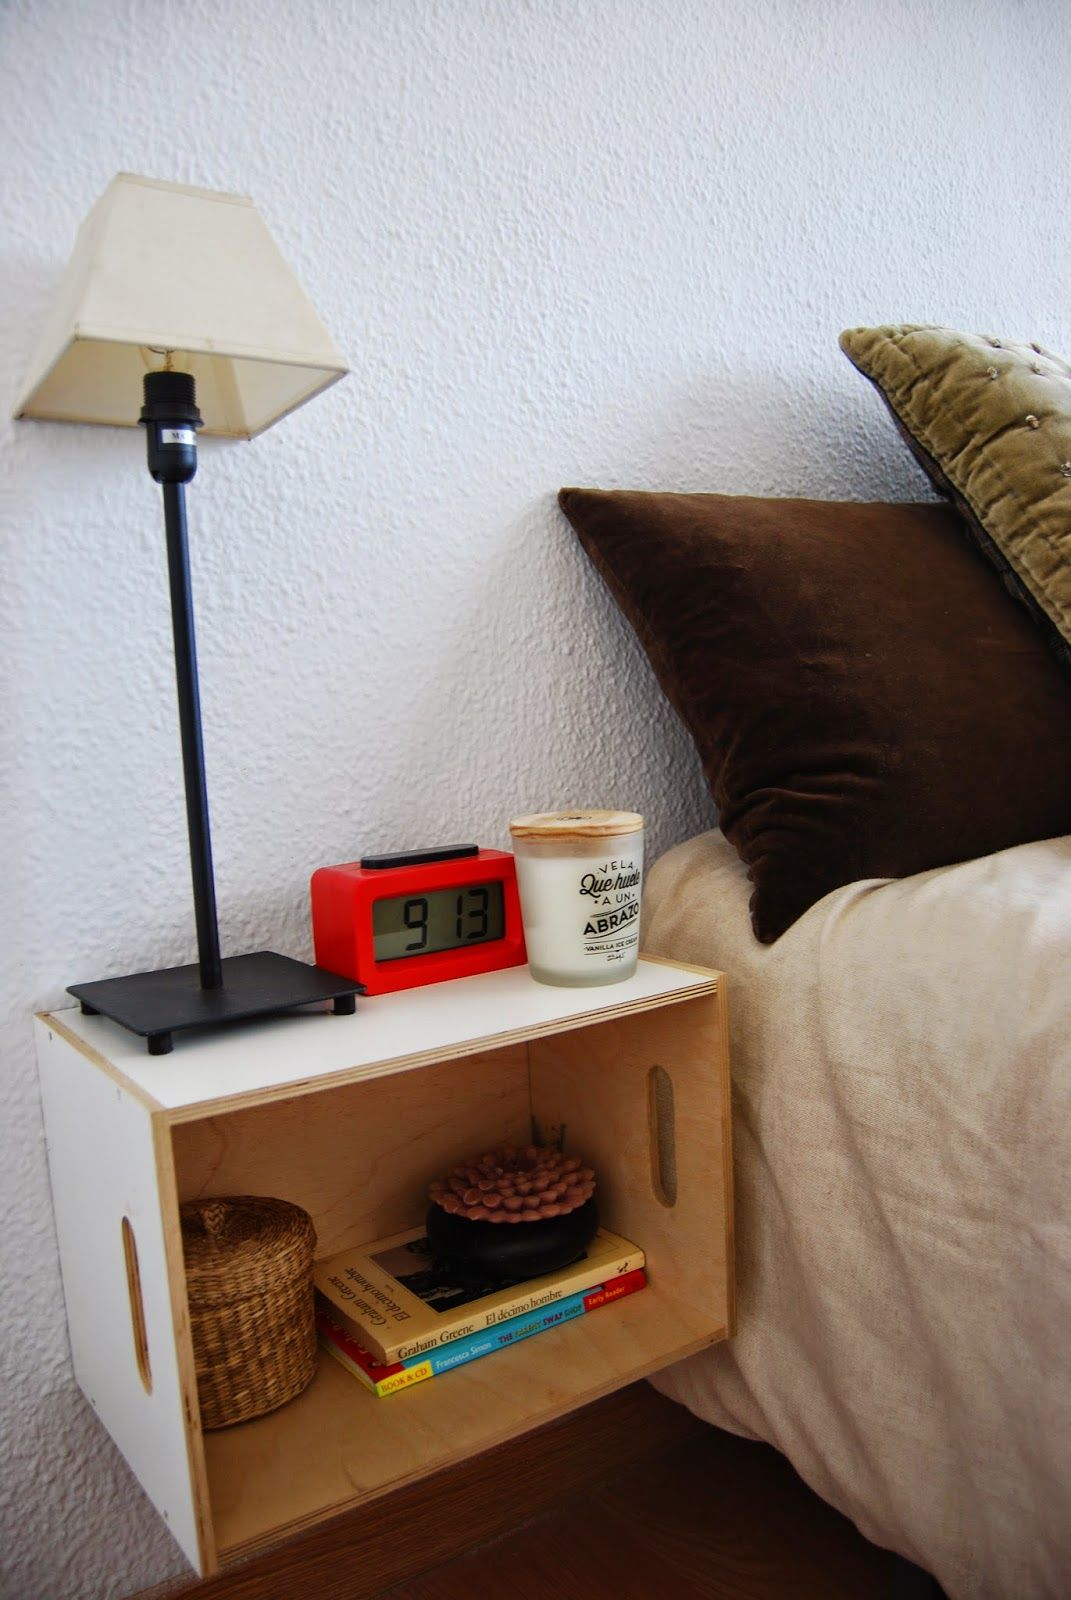 Low Cost Muebles Diy Low Cost Side Table Wih Ikea Wood Box Mesilla De